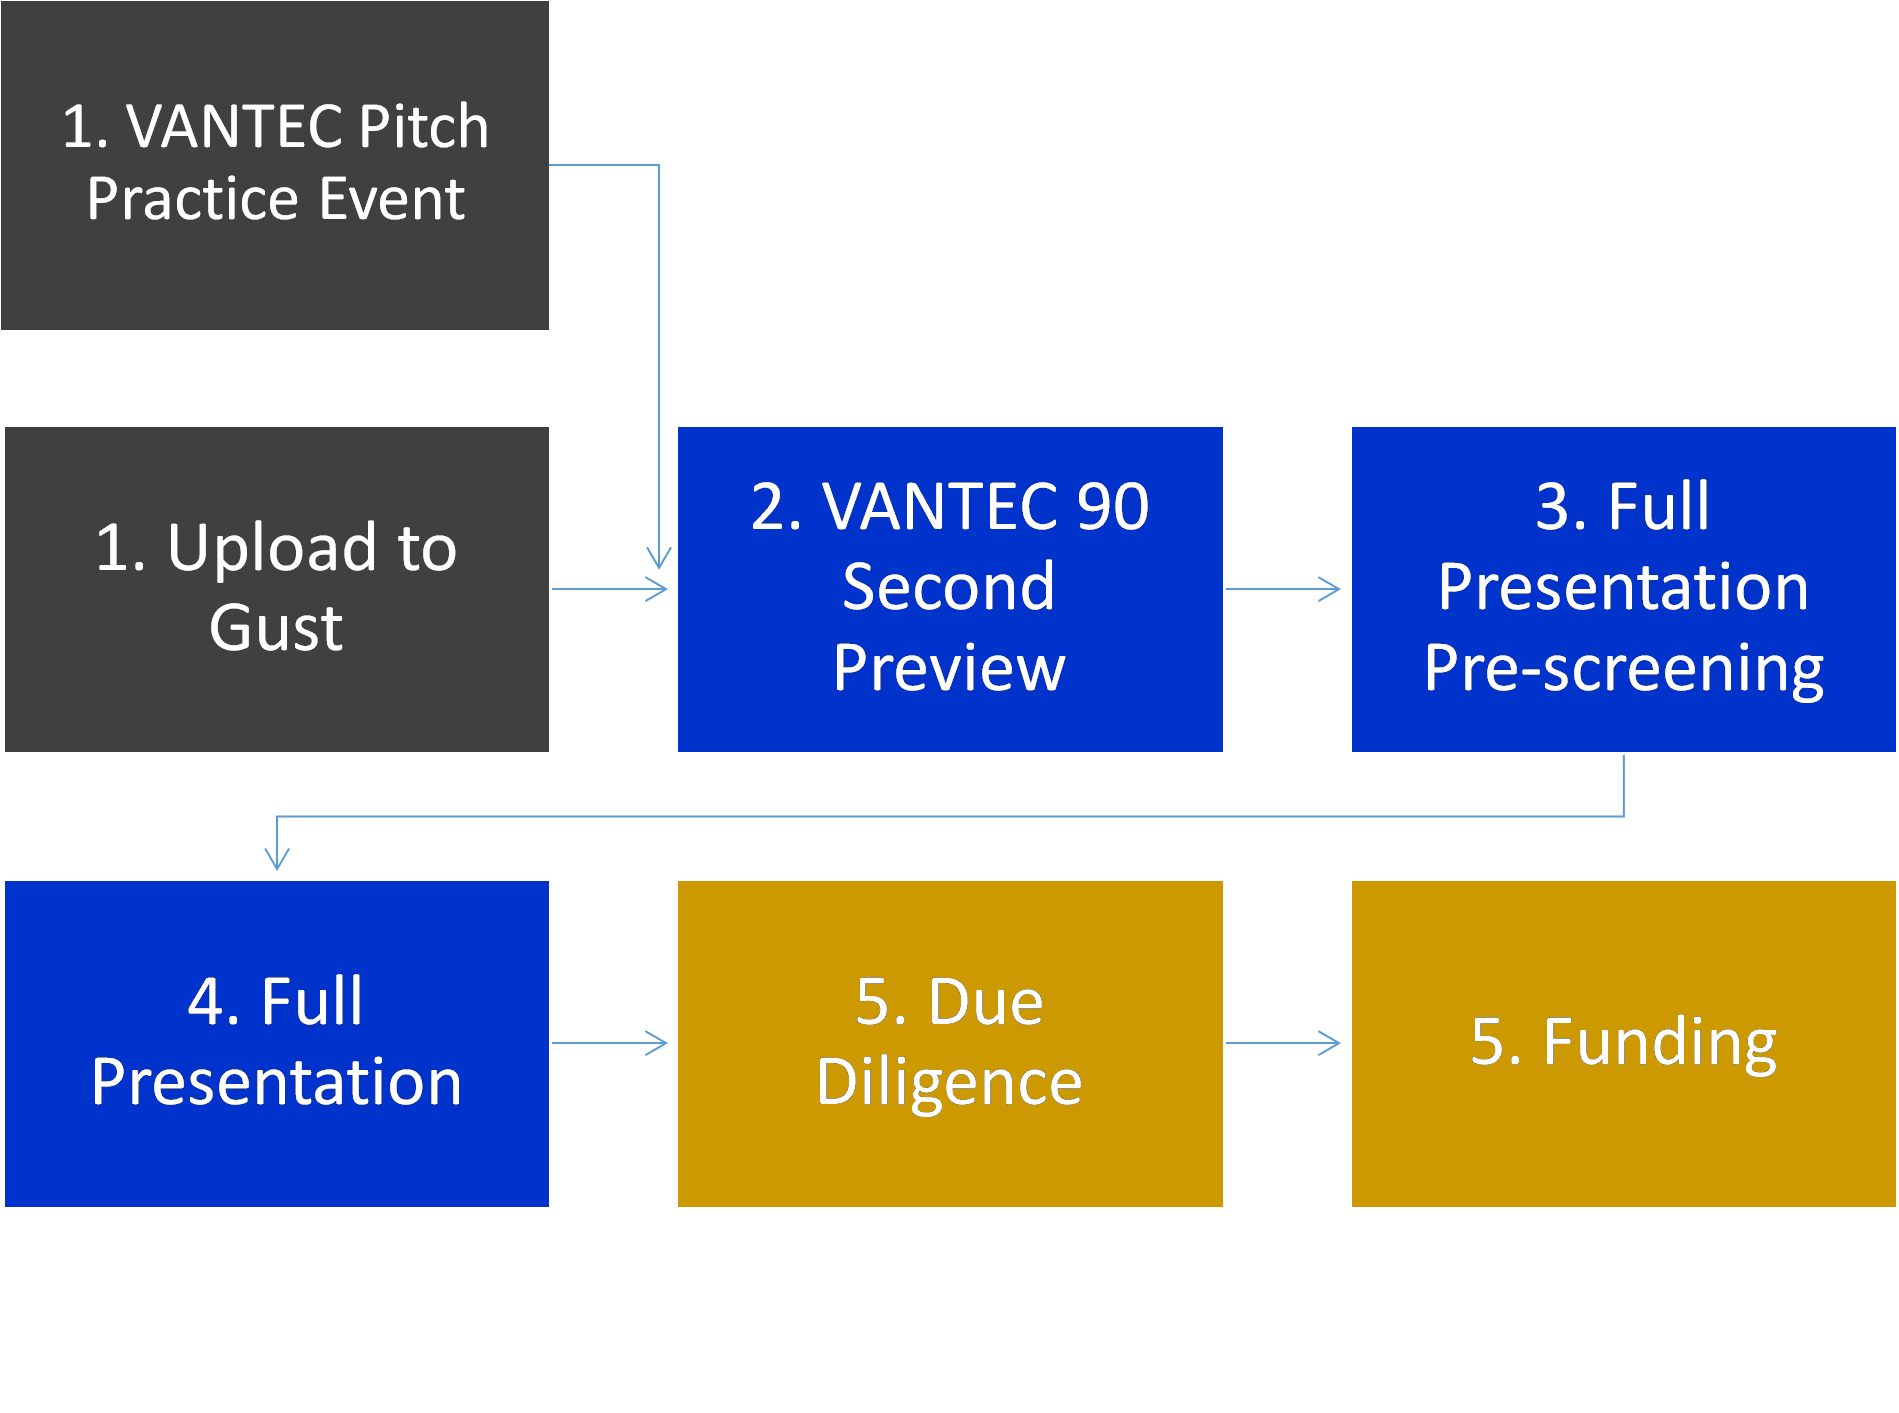 VANTEC Process Outline